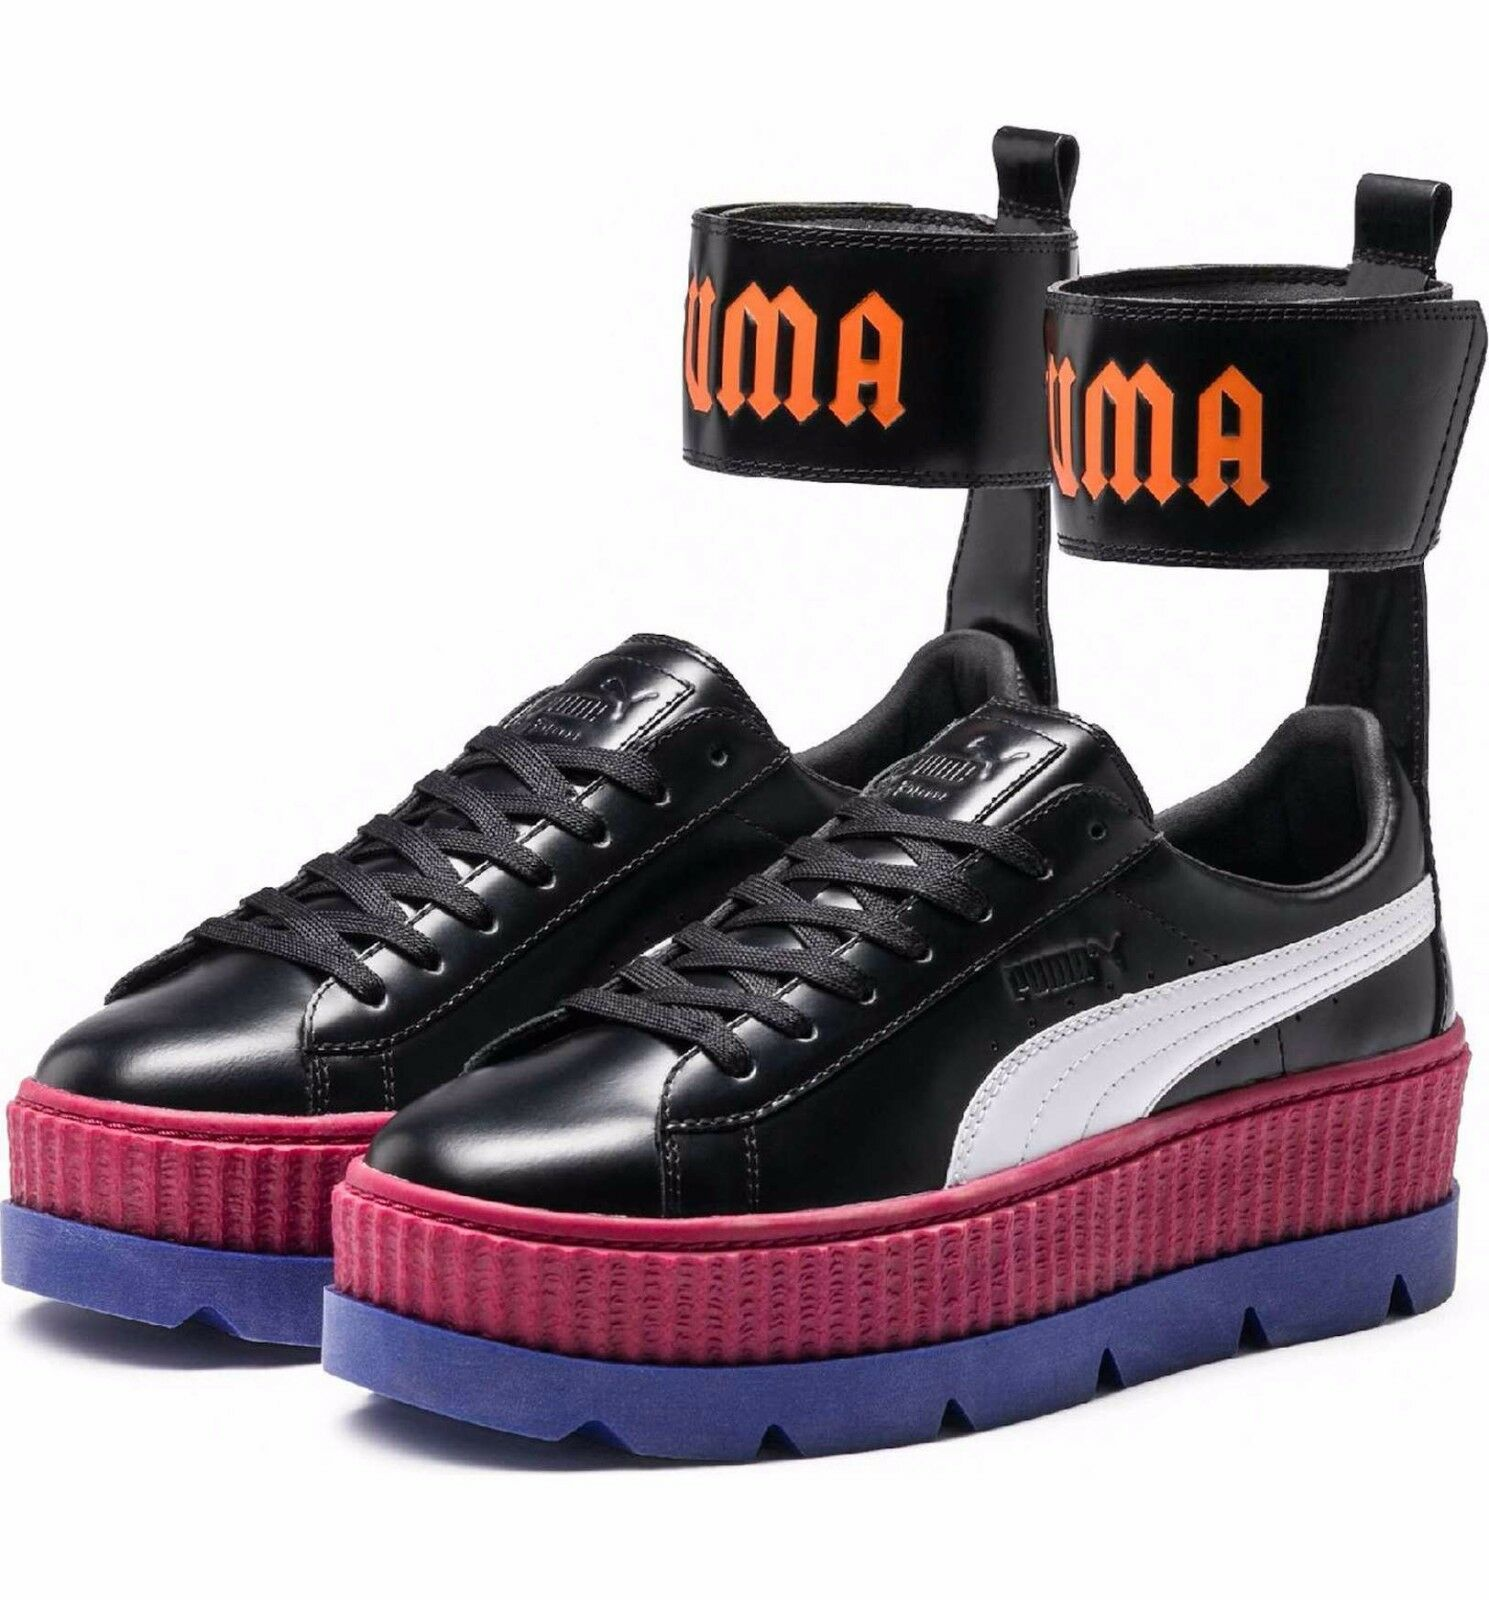 official photos 8eafb 760bd FENTY PUMA by Rihanna Ankle Strap Creeper Sneaker Black Red White Blue 5.5  NEW